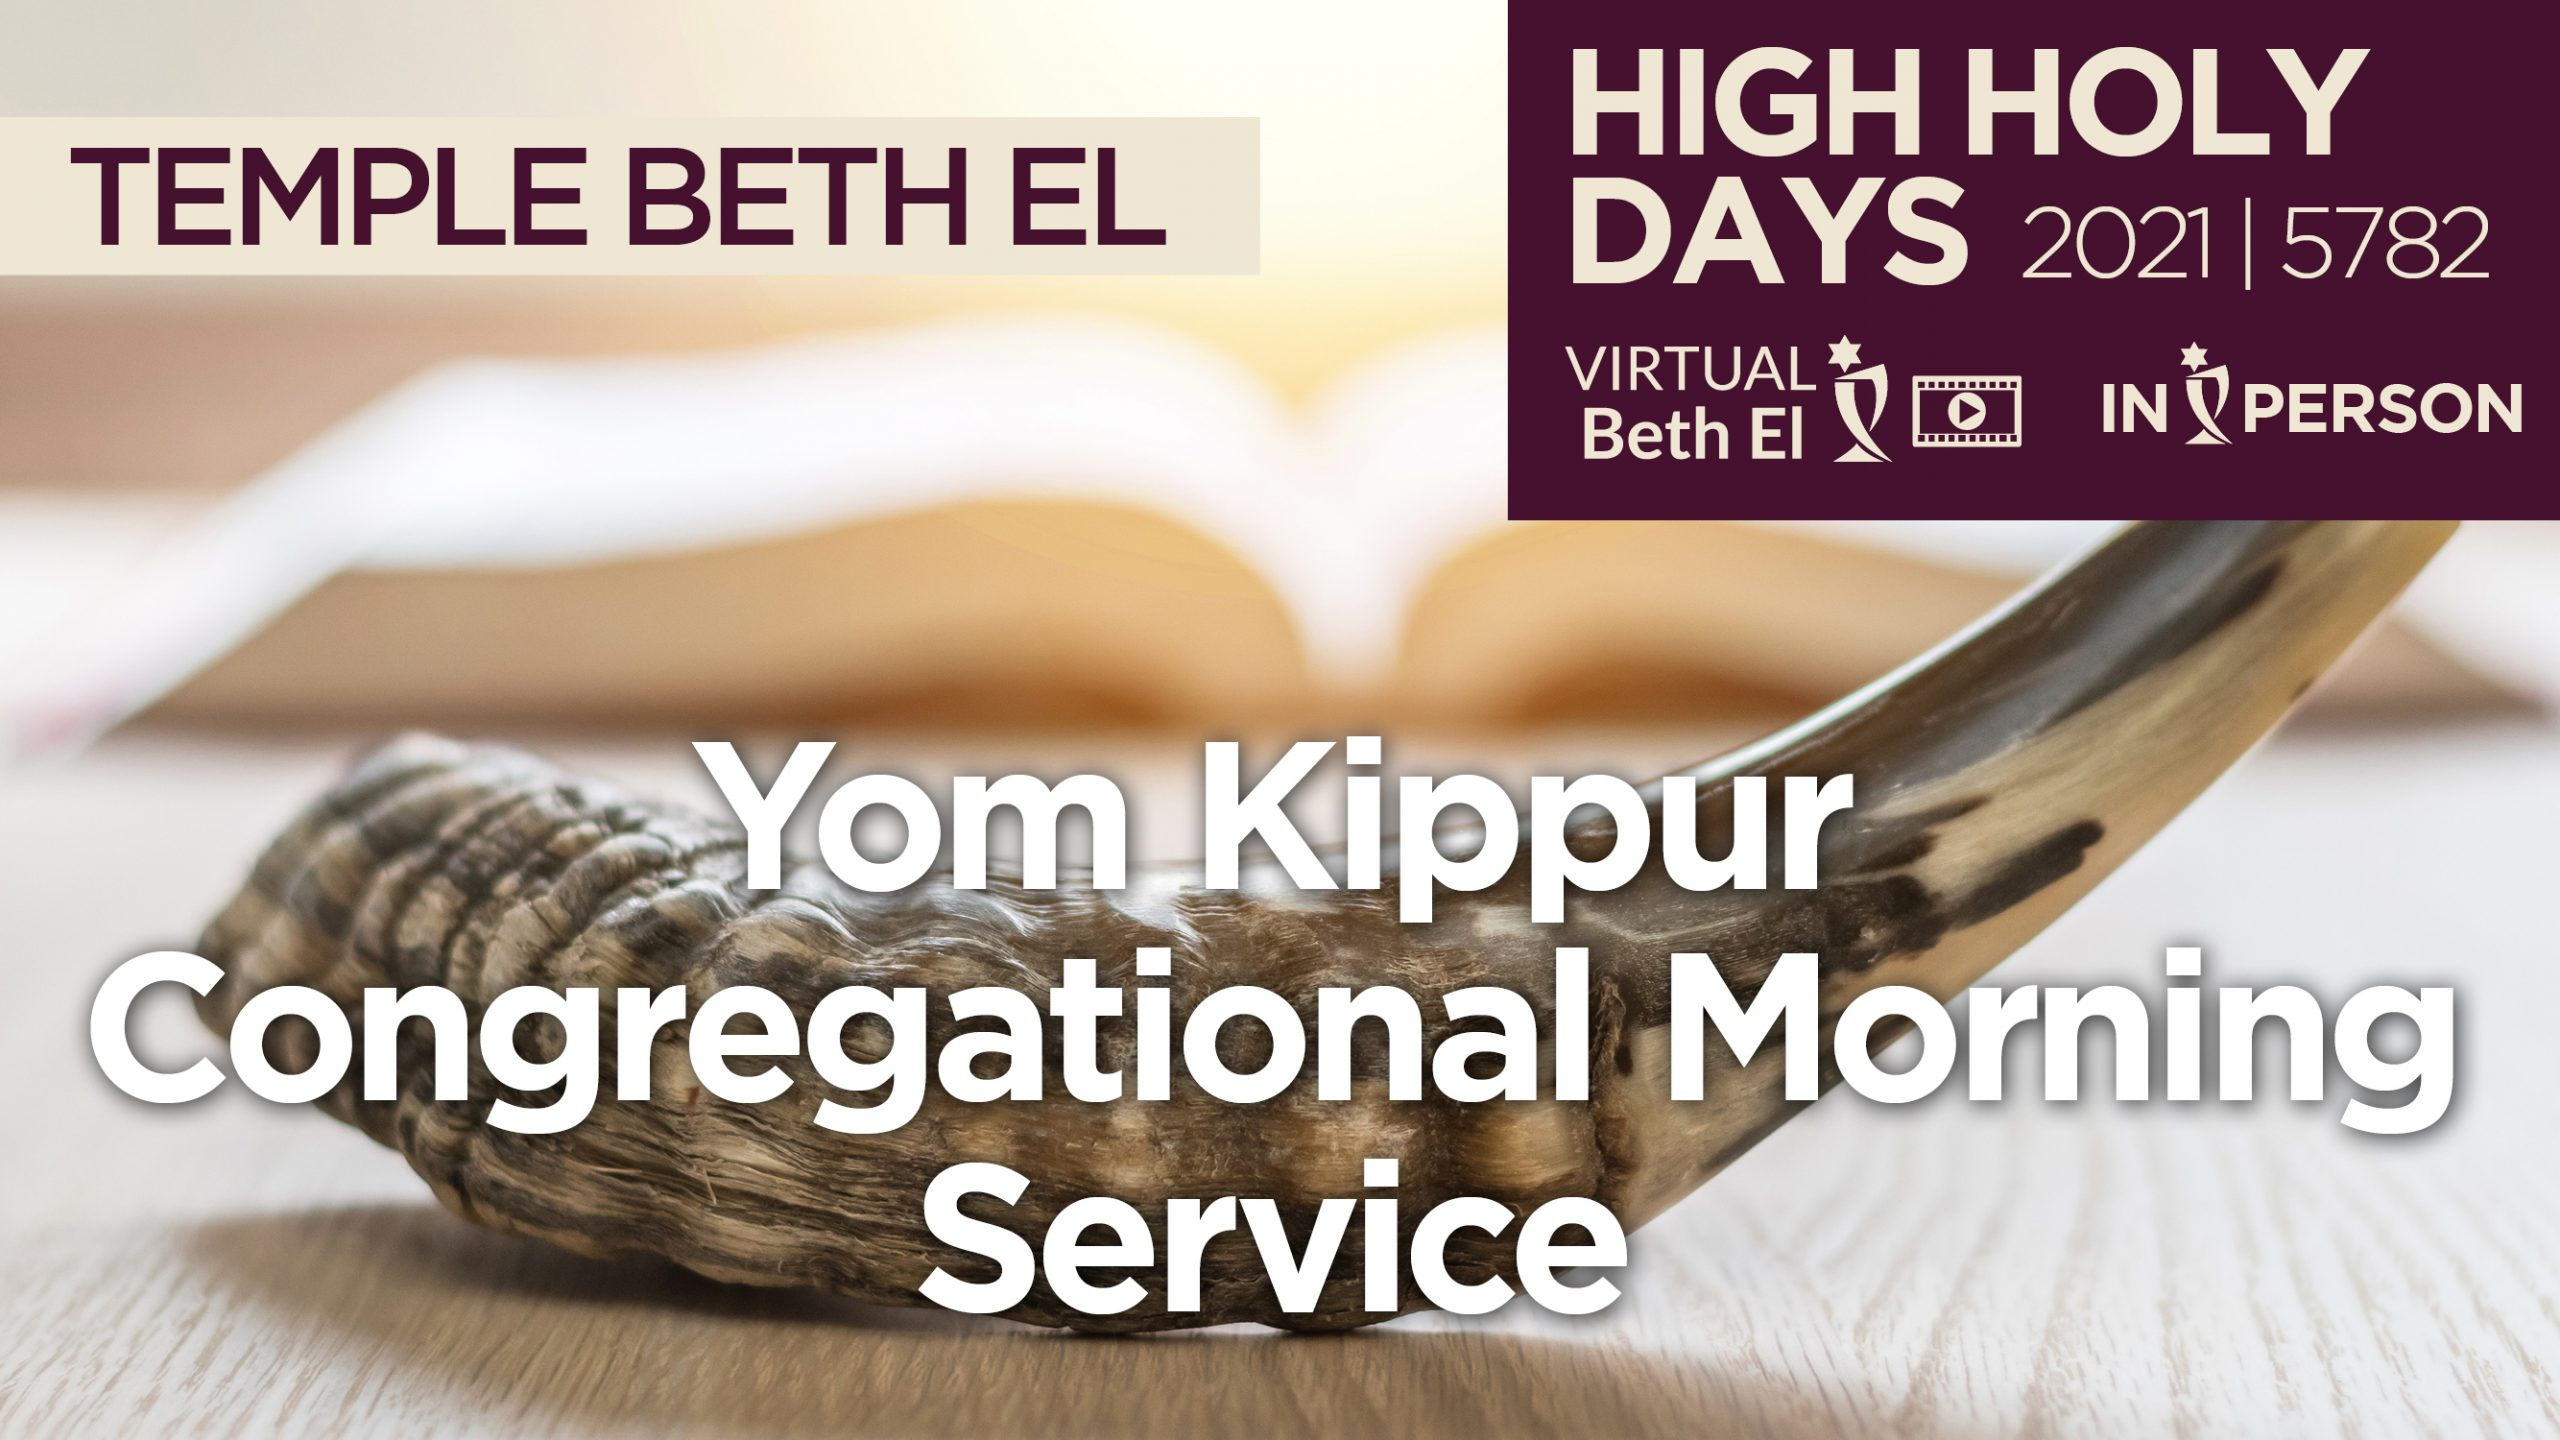 Yom Kippur Morning Services Announcement Graphic for 2021 5782